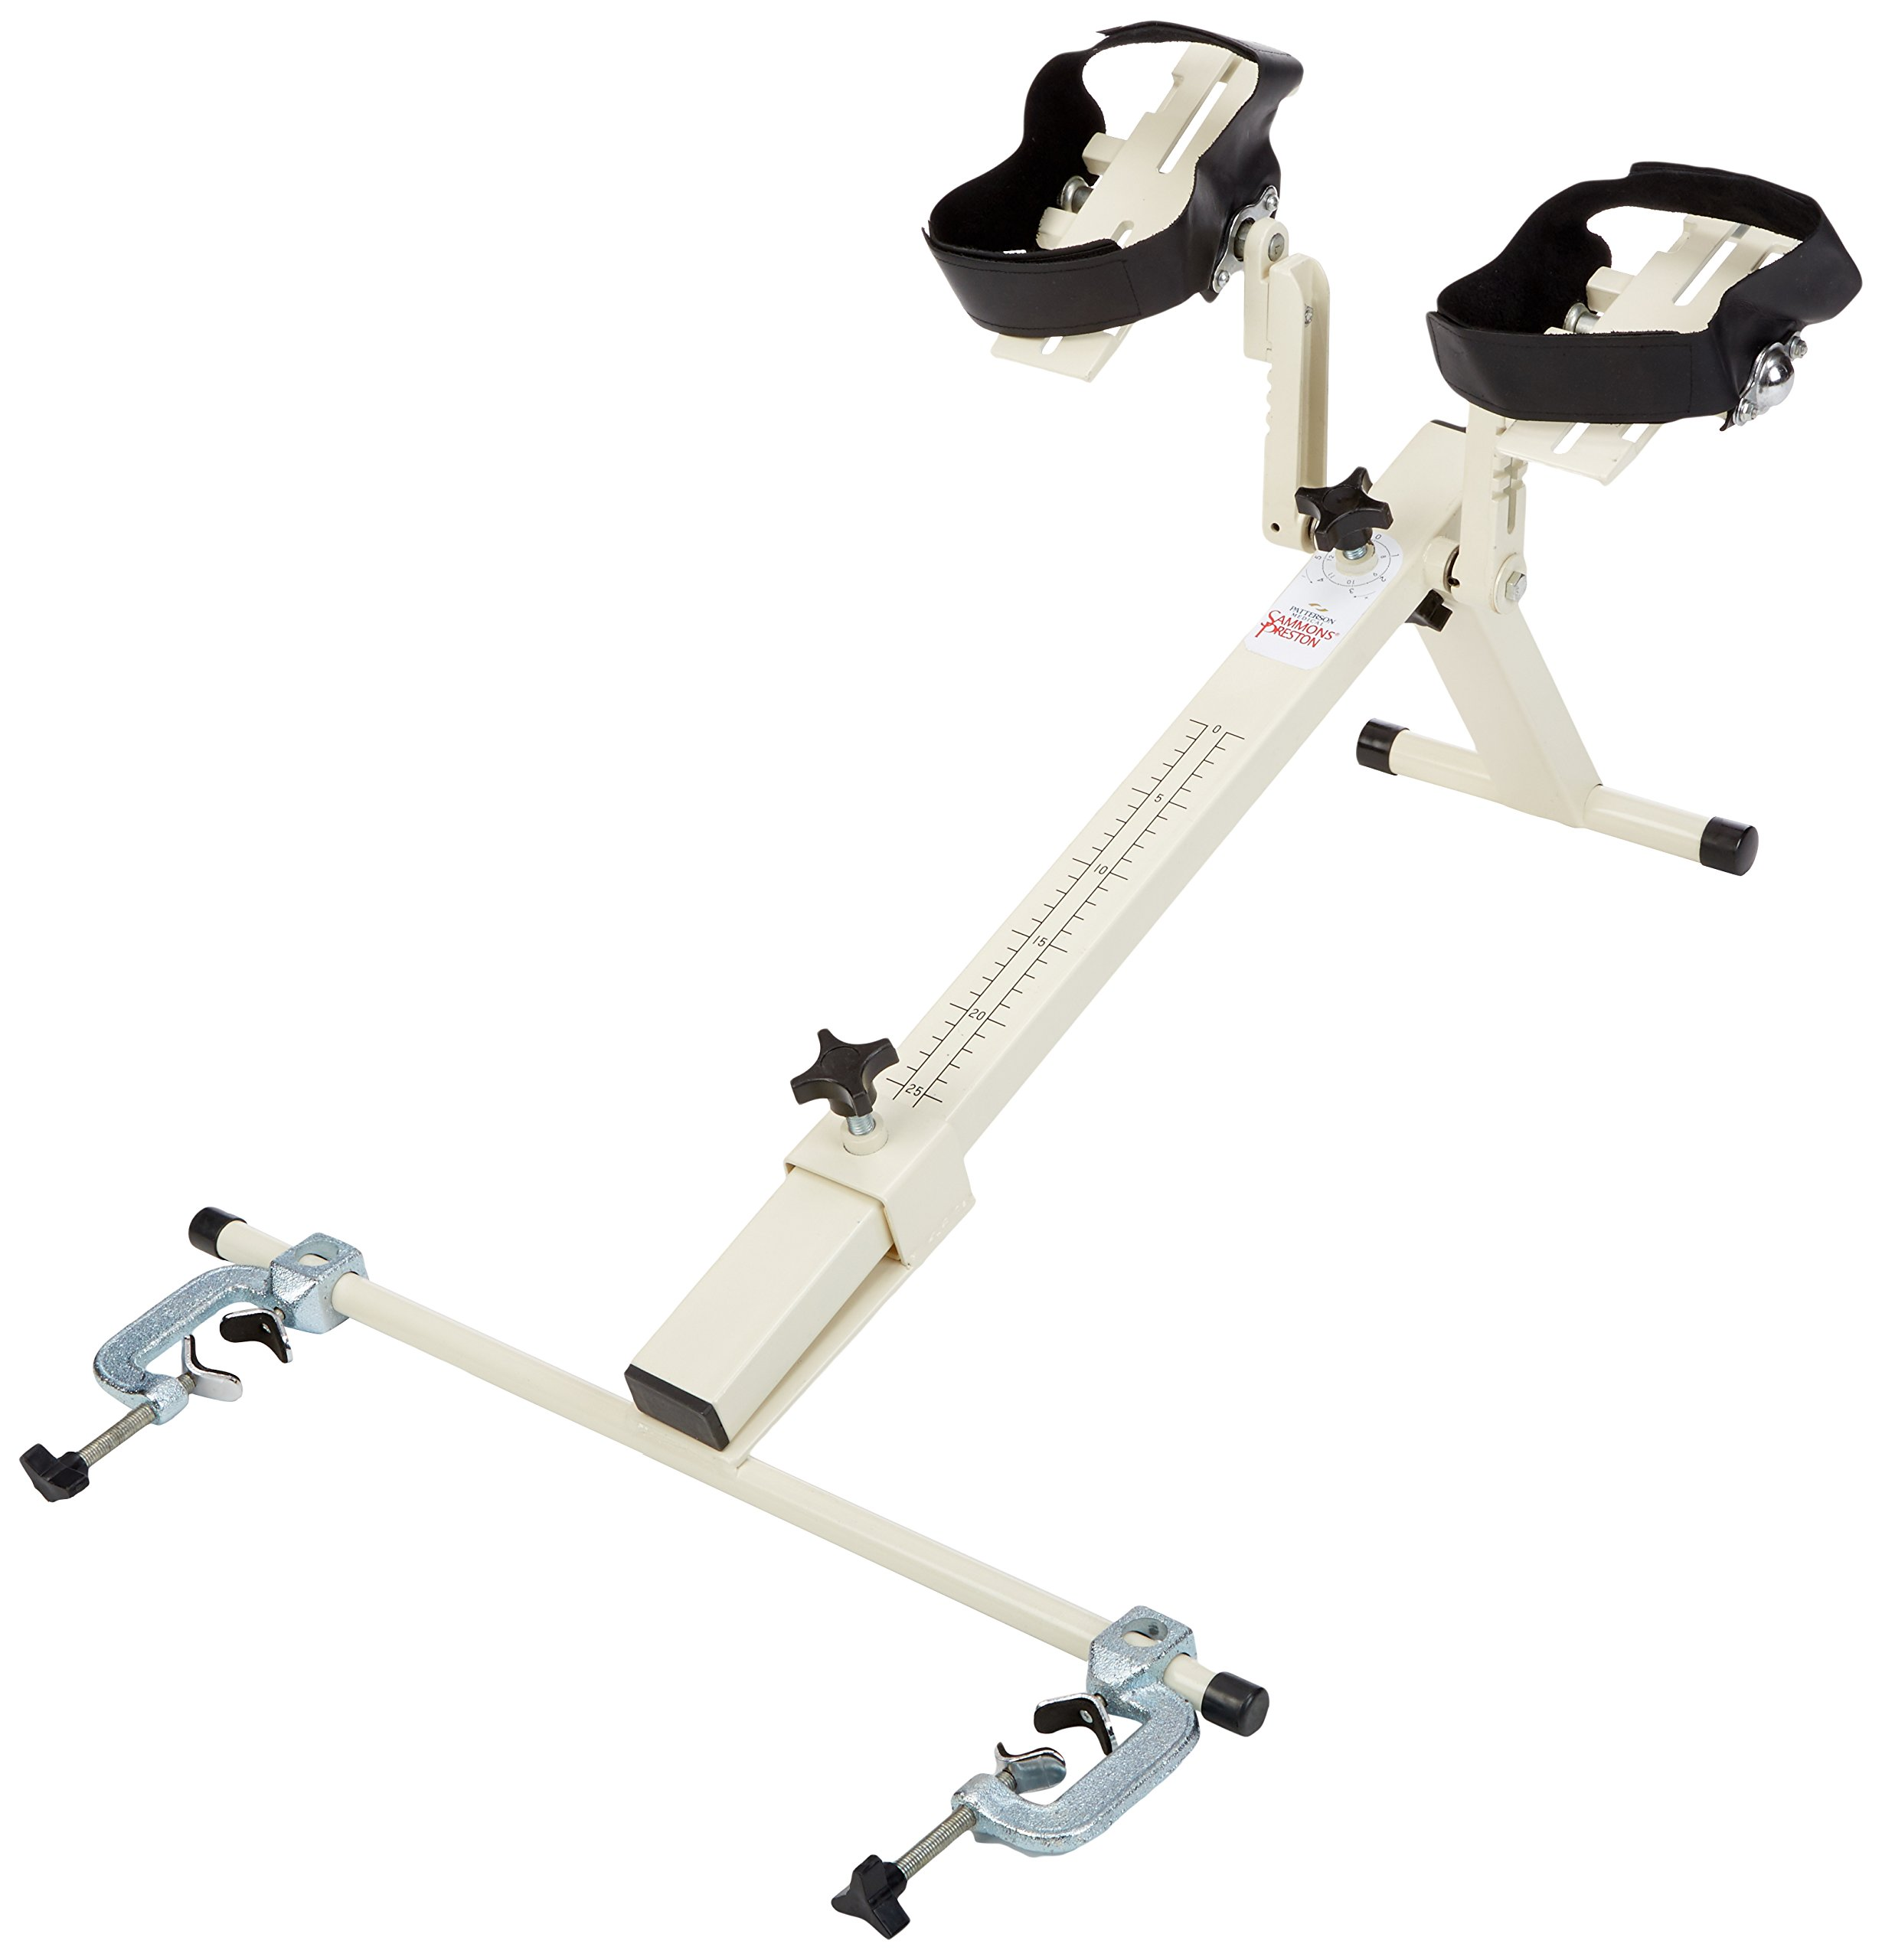 Sammons Preston Restorator III Clinic Model, Pedal Exerciser for Seated Cycling, Clinical Professional Physical Therapy Equipment, Bicycle Peddler for Chairs & Wheelchairs, Low-Impact Exercise Machine